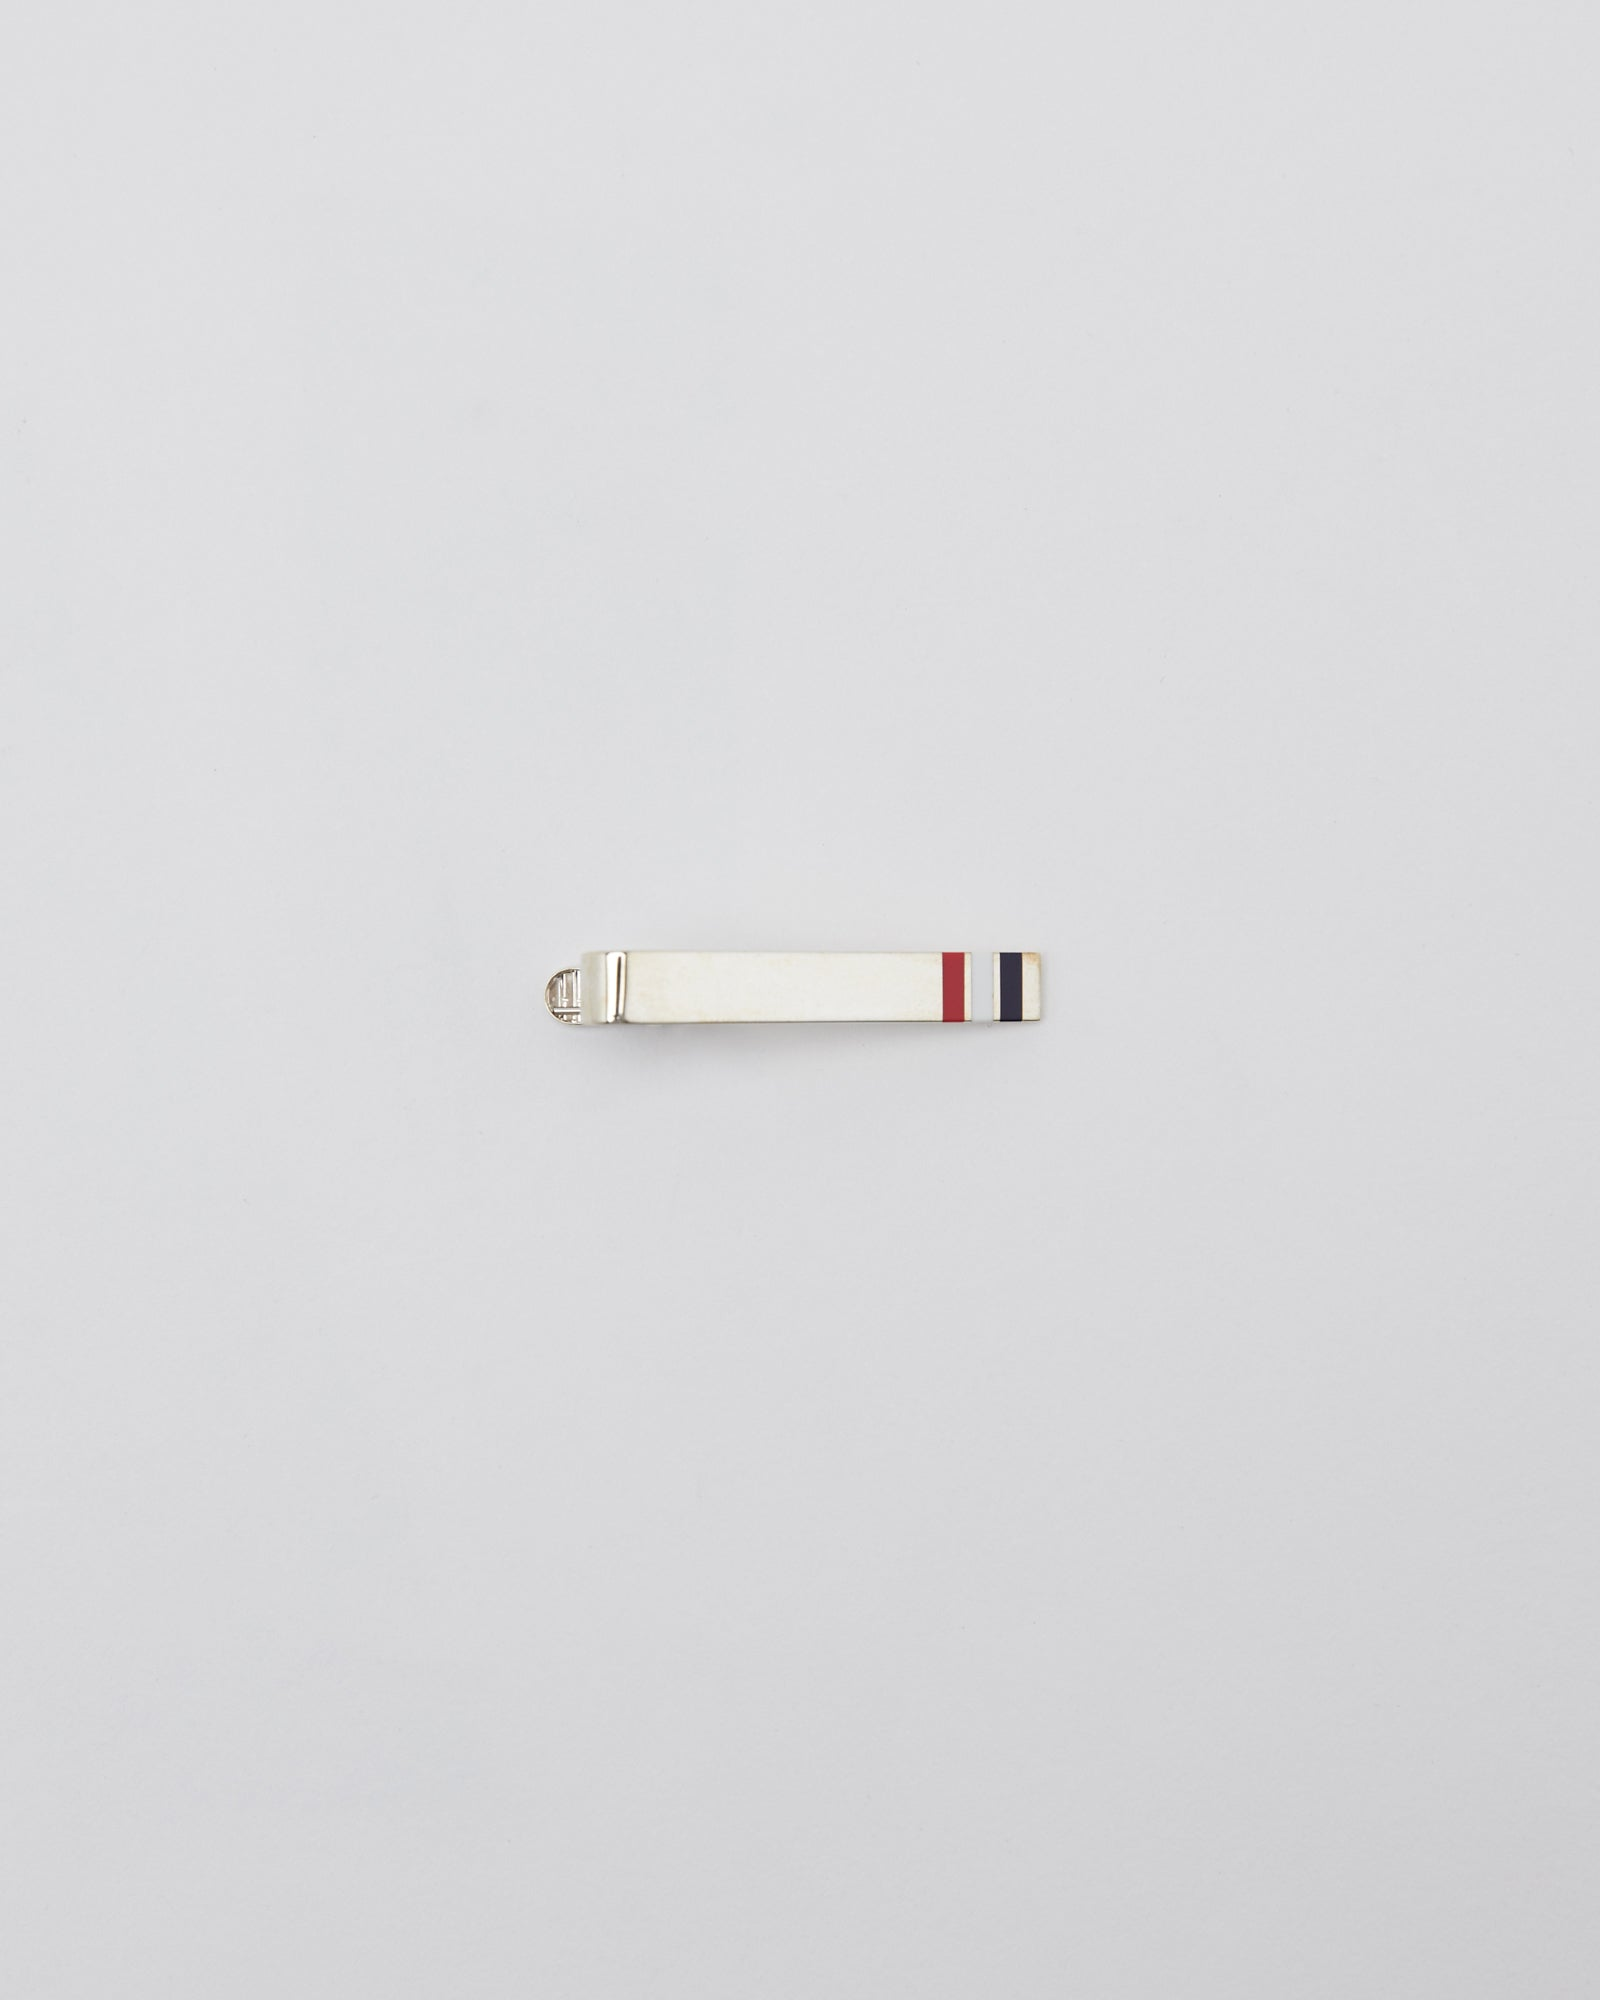 Vertical Long Tie Bar in Sterling Silver